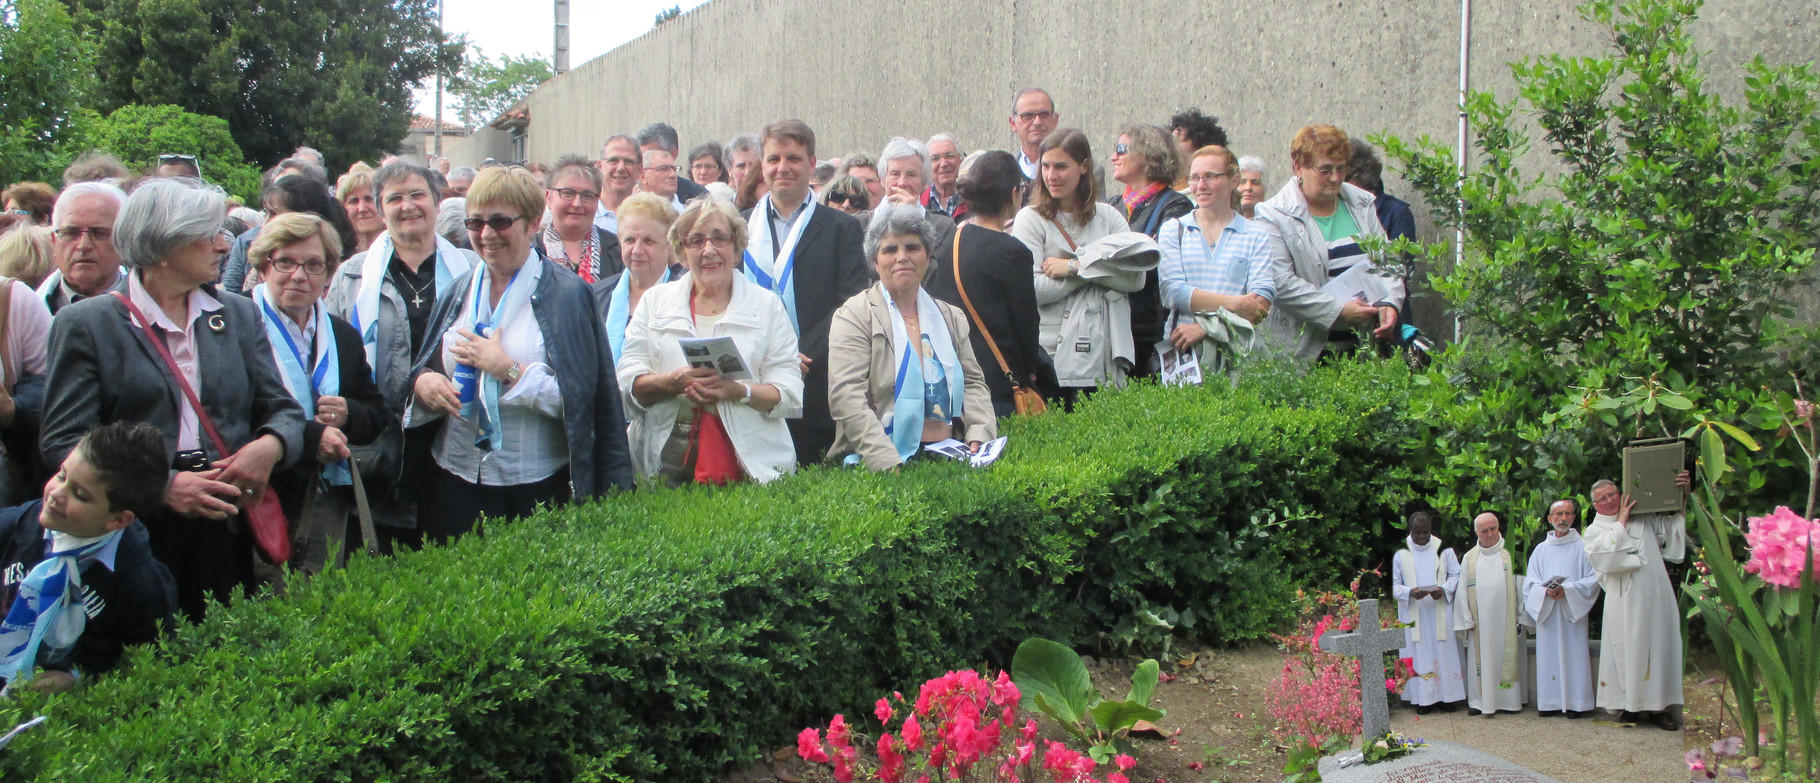 Celebration at Castres for the canonization of Jeanne Emilie